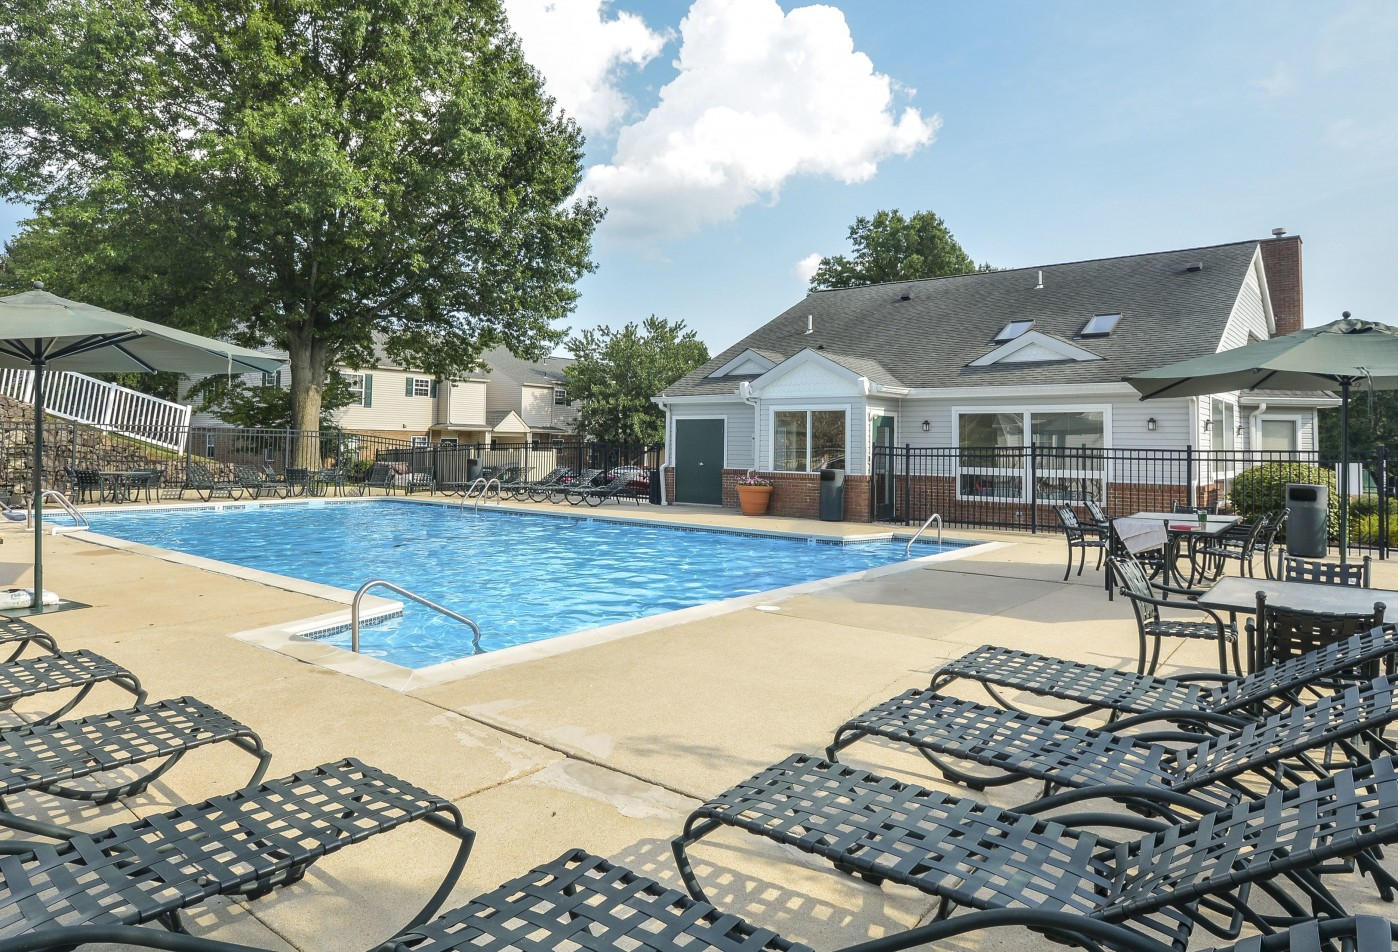 Apartments for rent in West Chester, PA | Wyntre Brooke Apartments